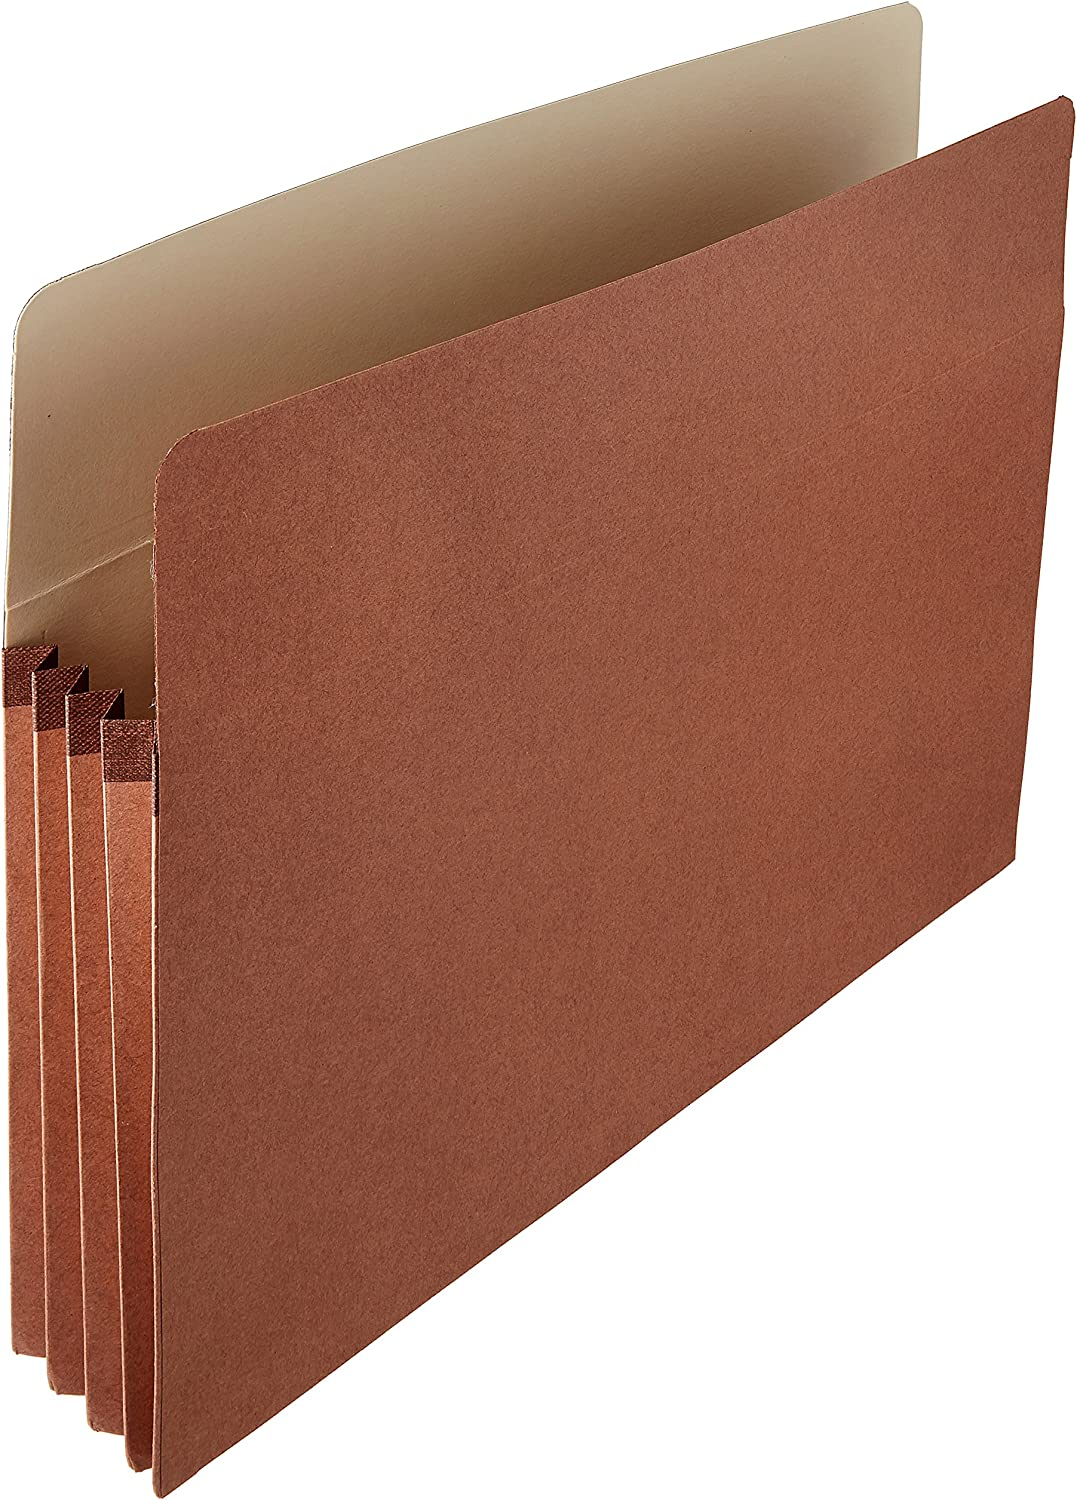 Basics Expanding Accordian Organizer File Folders - Letter Size, 25-Pack : Office Products